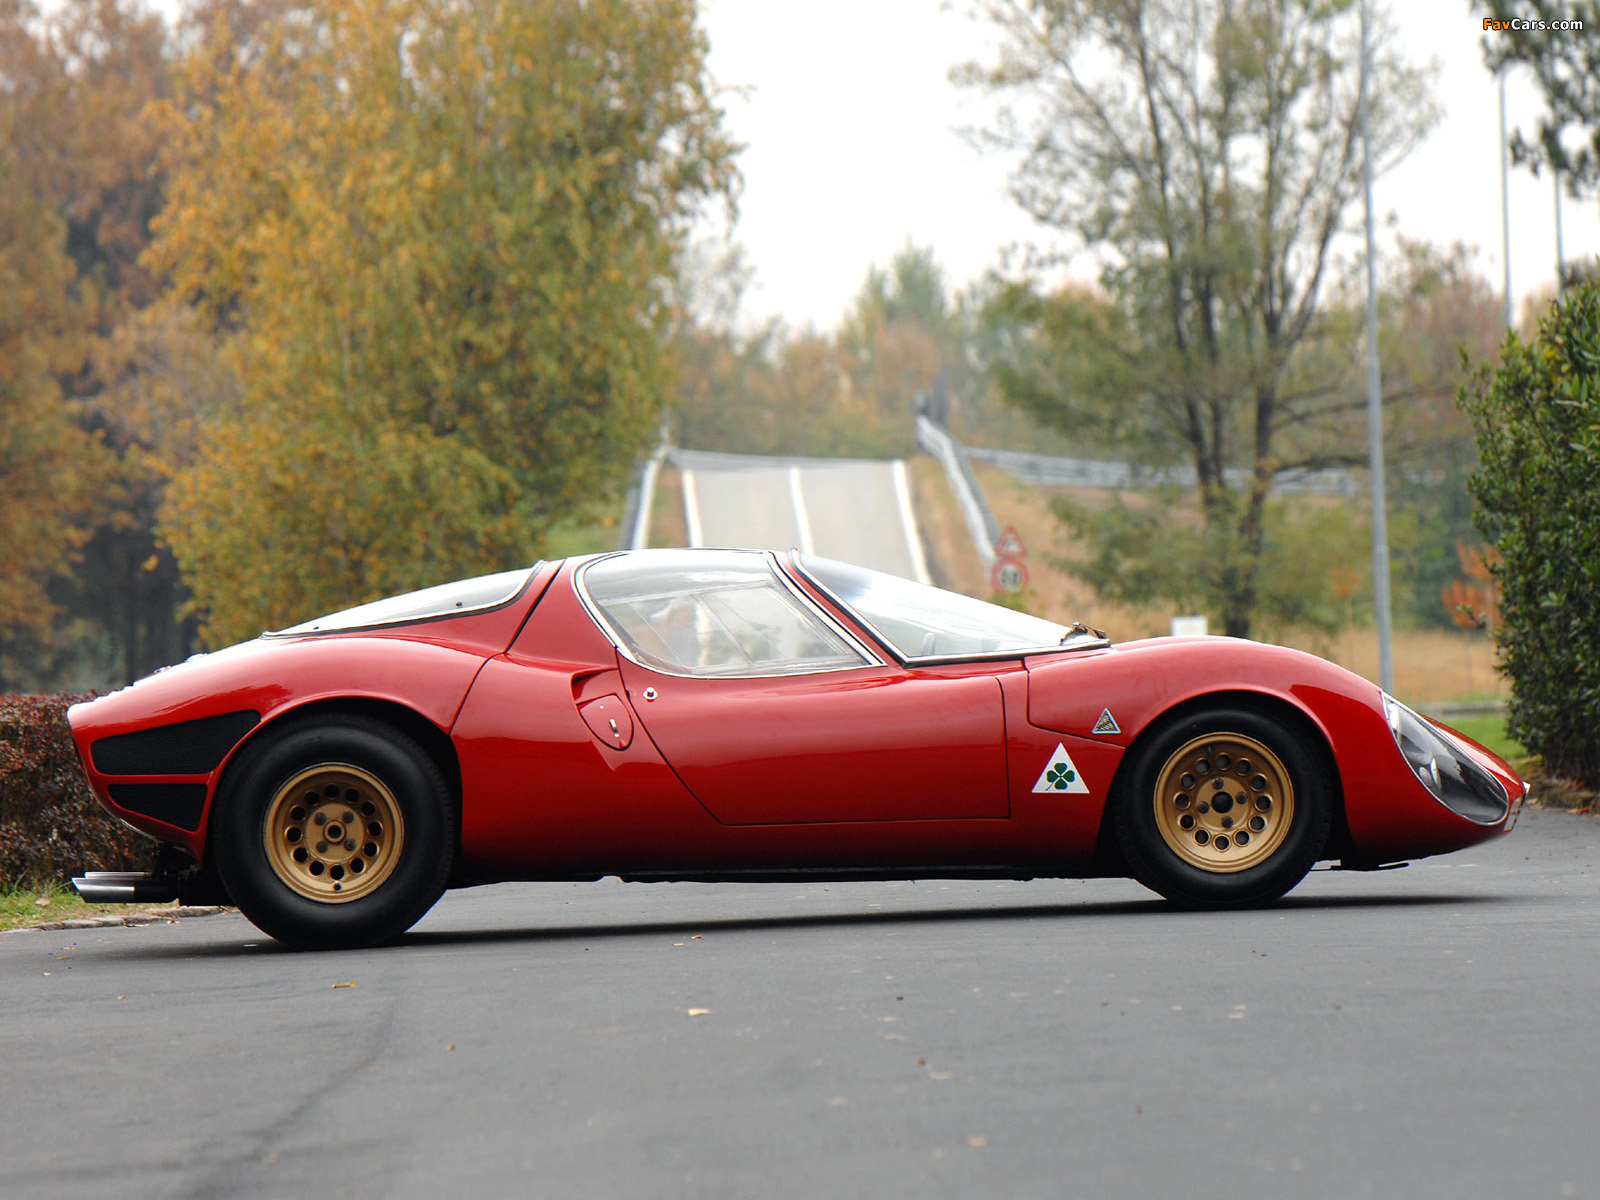 Alfa romeo tipo 33 stradale replica for sale 14